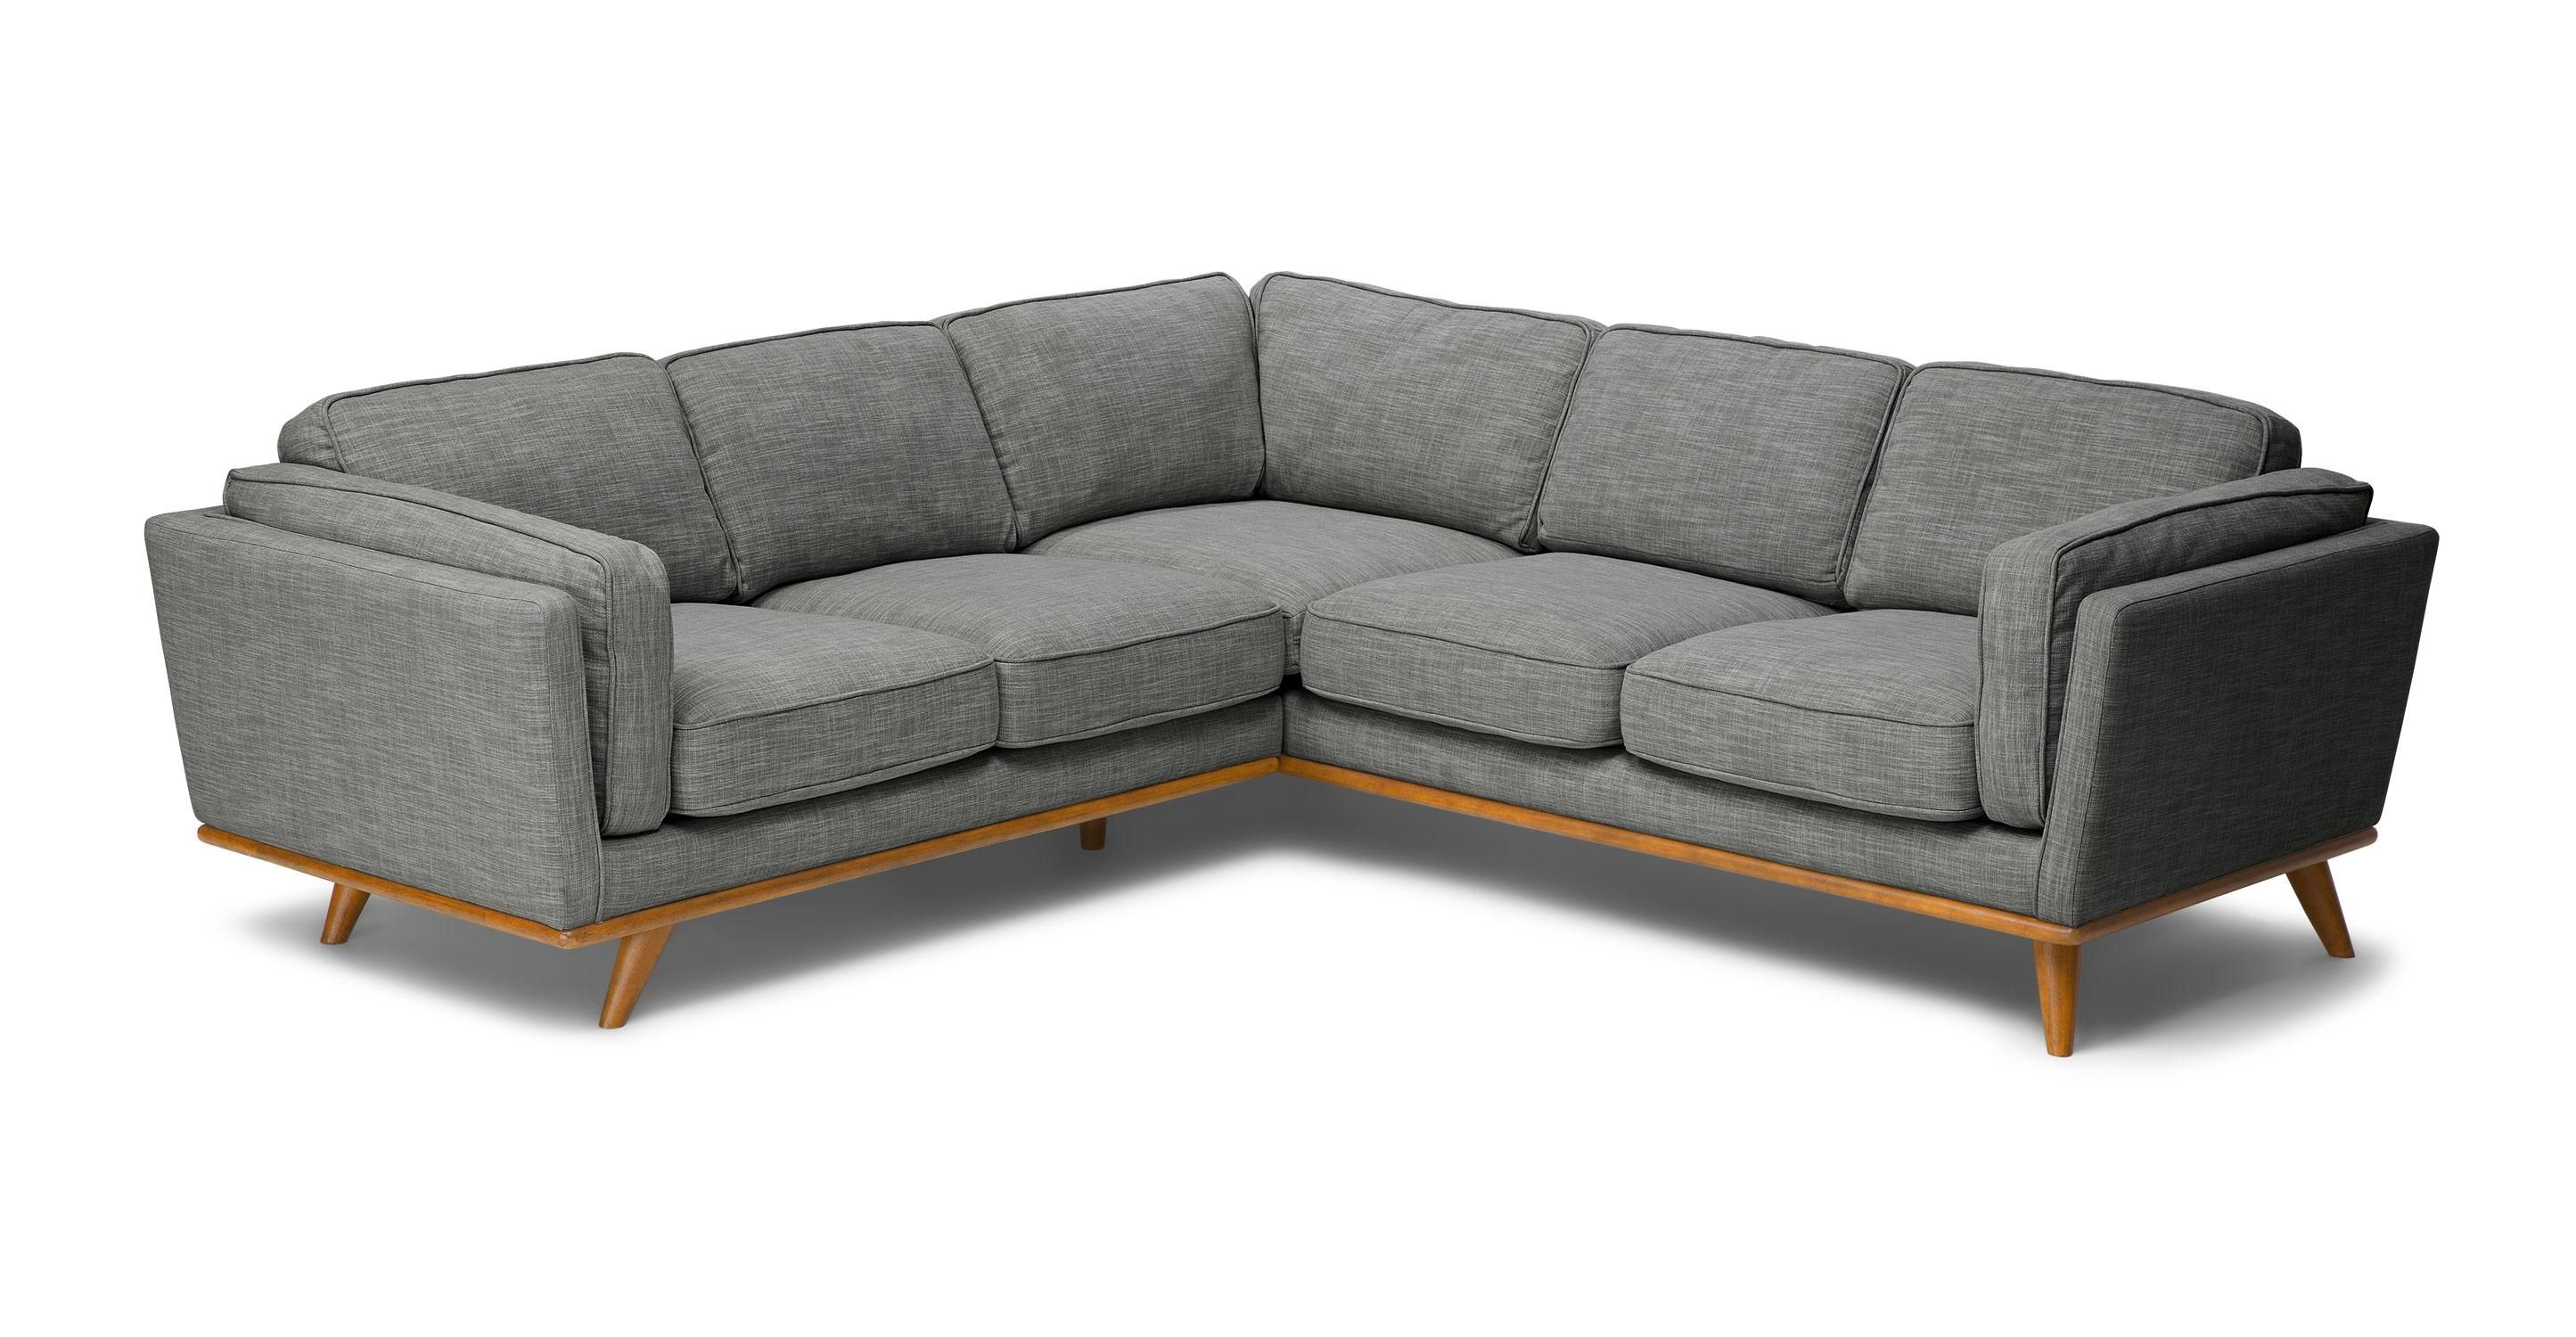 Sofas Center : Mid Century Modern Sectional Sofa Curved Style Pertaining To Mid Century Modern Sectional (View 3 of 20)